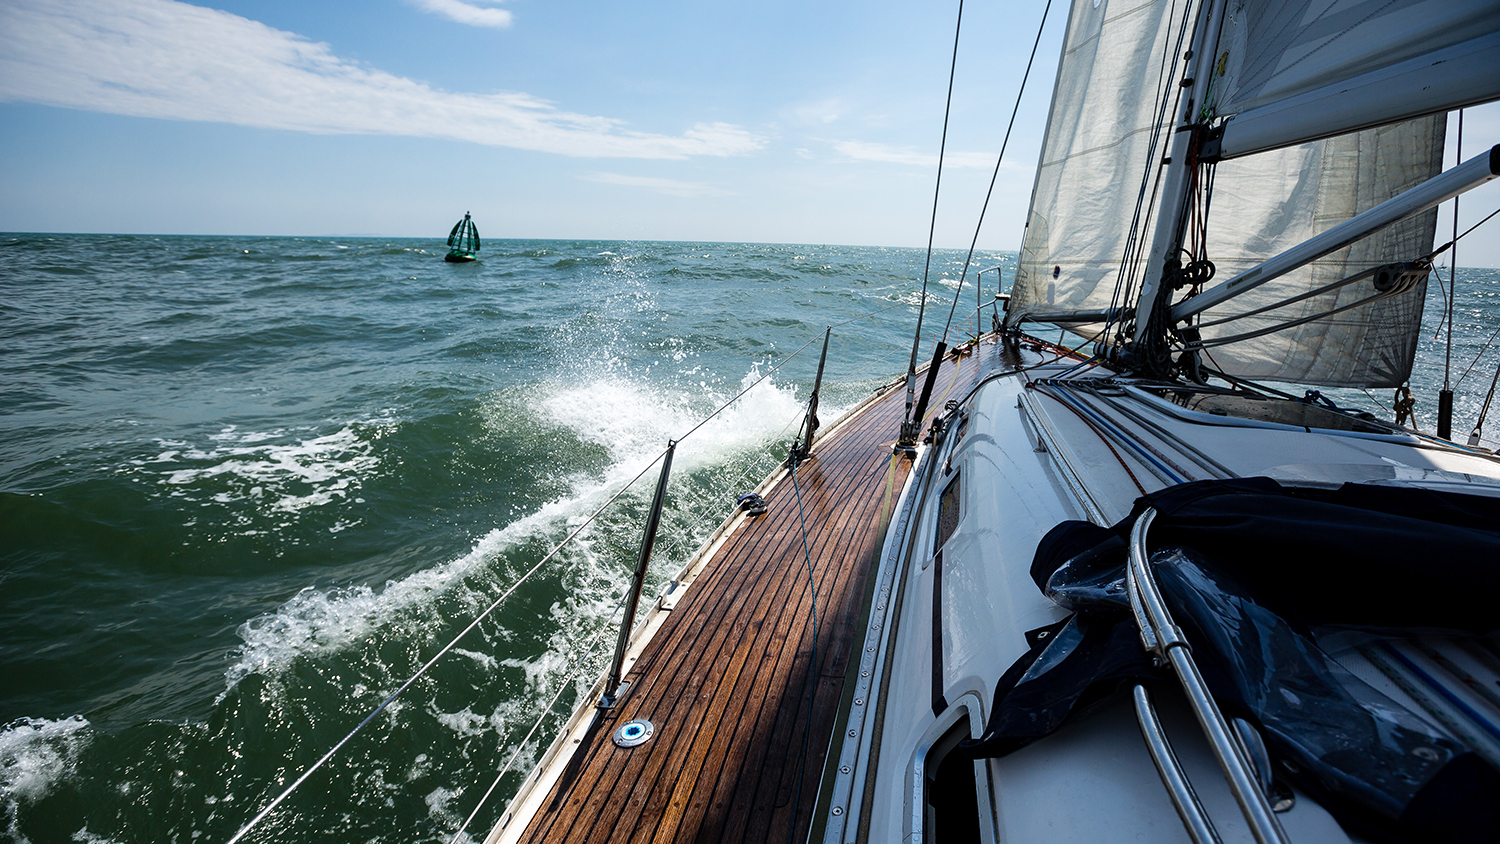 Yacht sailing: View from onboard a yacht at sea